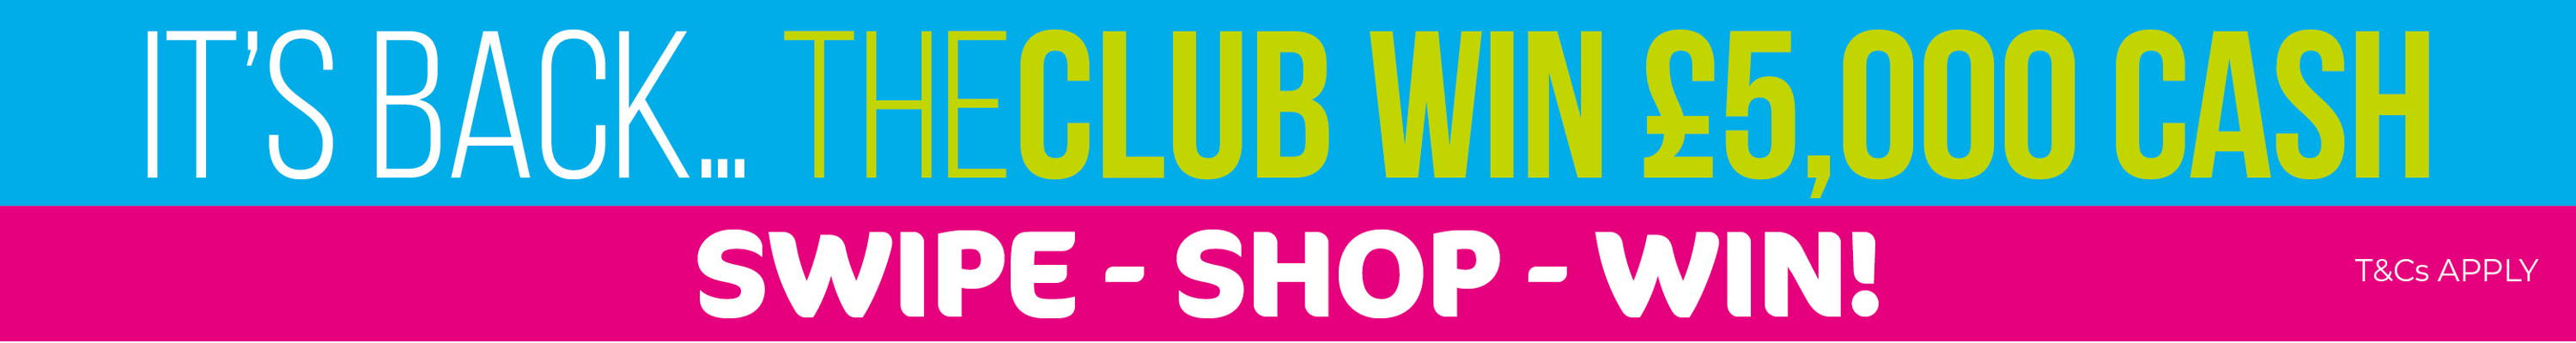 The Club Win £5,000 Cash Coming Soon! Swipe Your Club Card In-Store